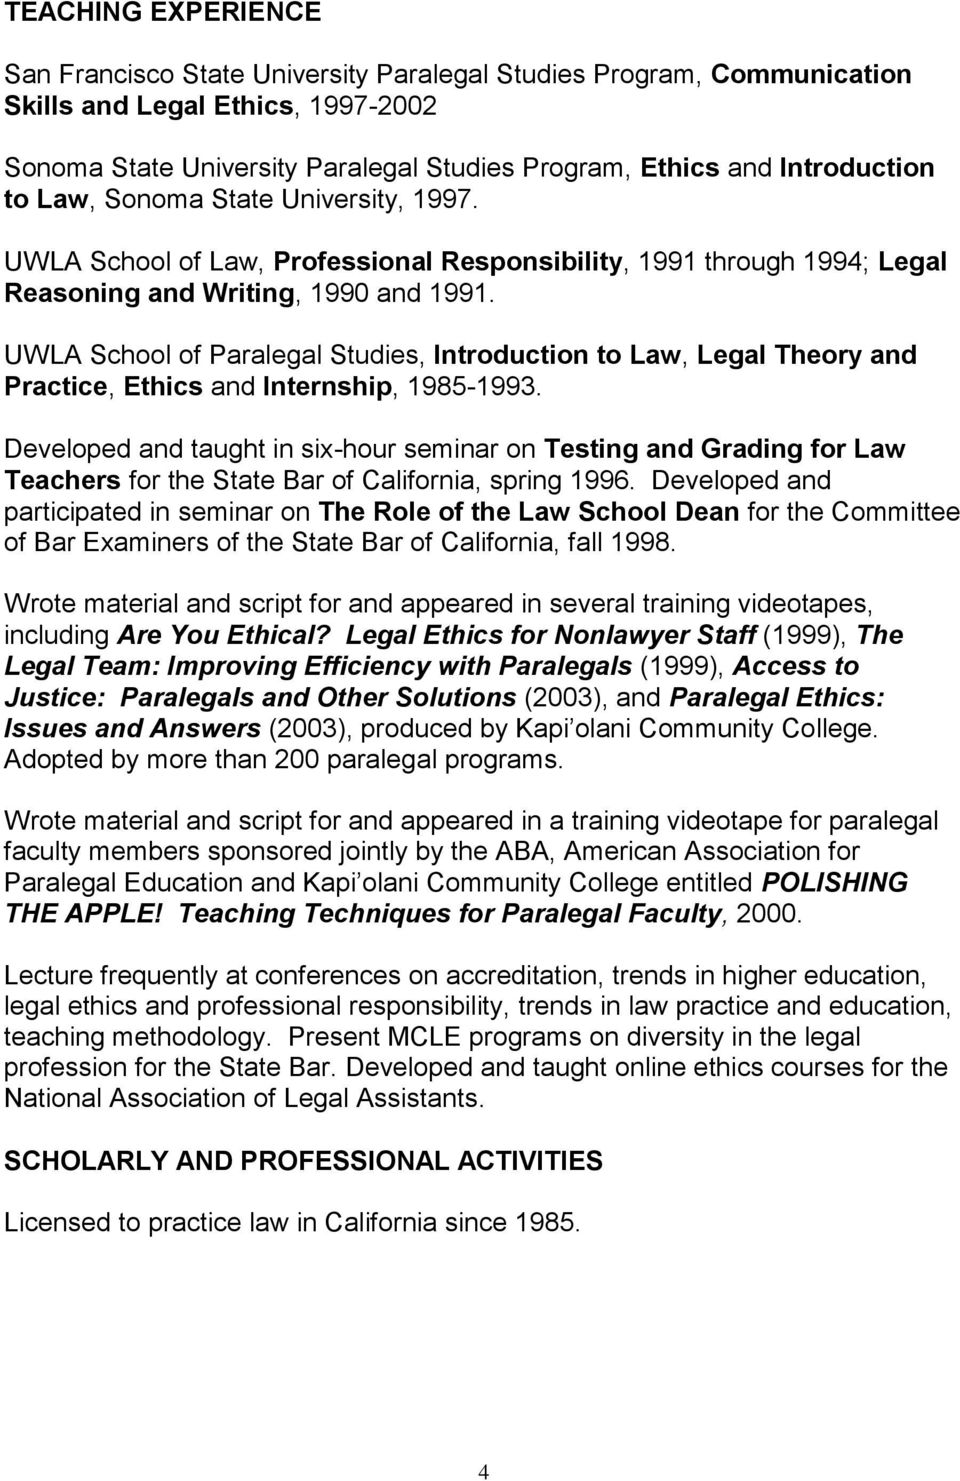 UWLA School of Paralegal Studies, Introduction to Law, Legal Theory and Practice, Ethics and Internship, 1985-1993.